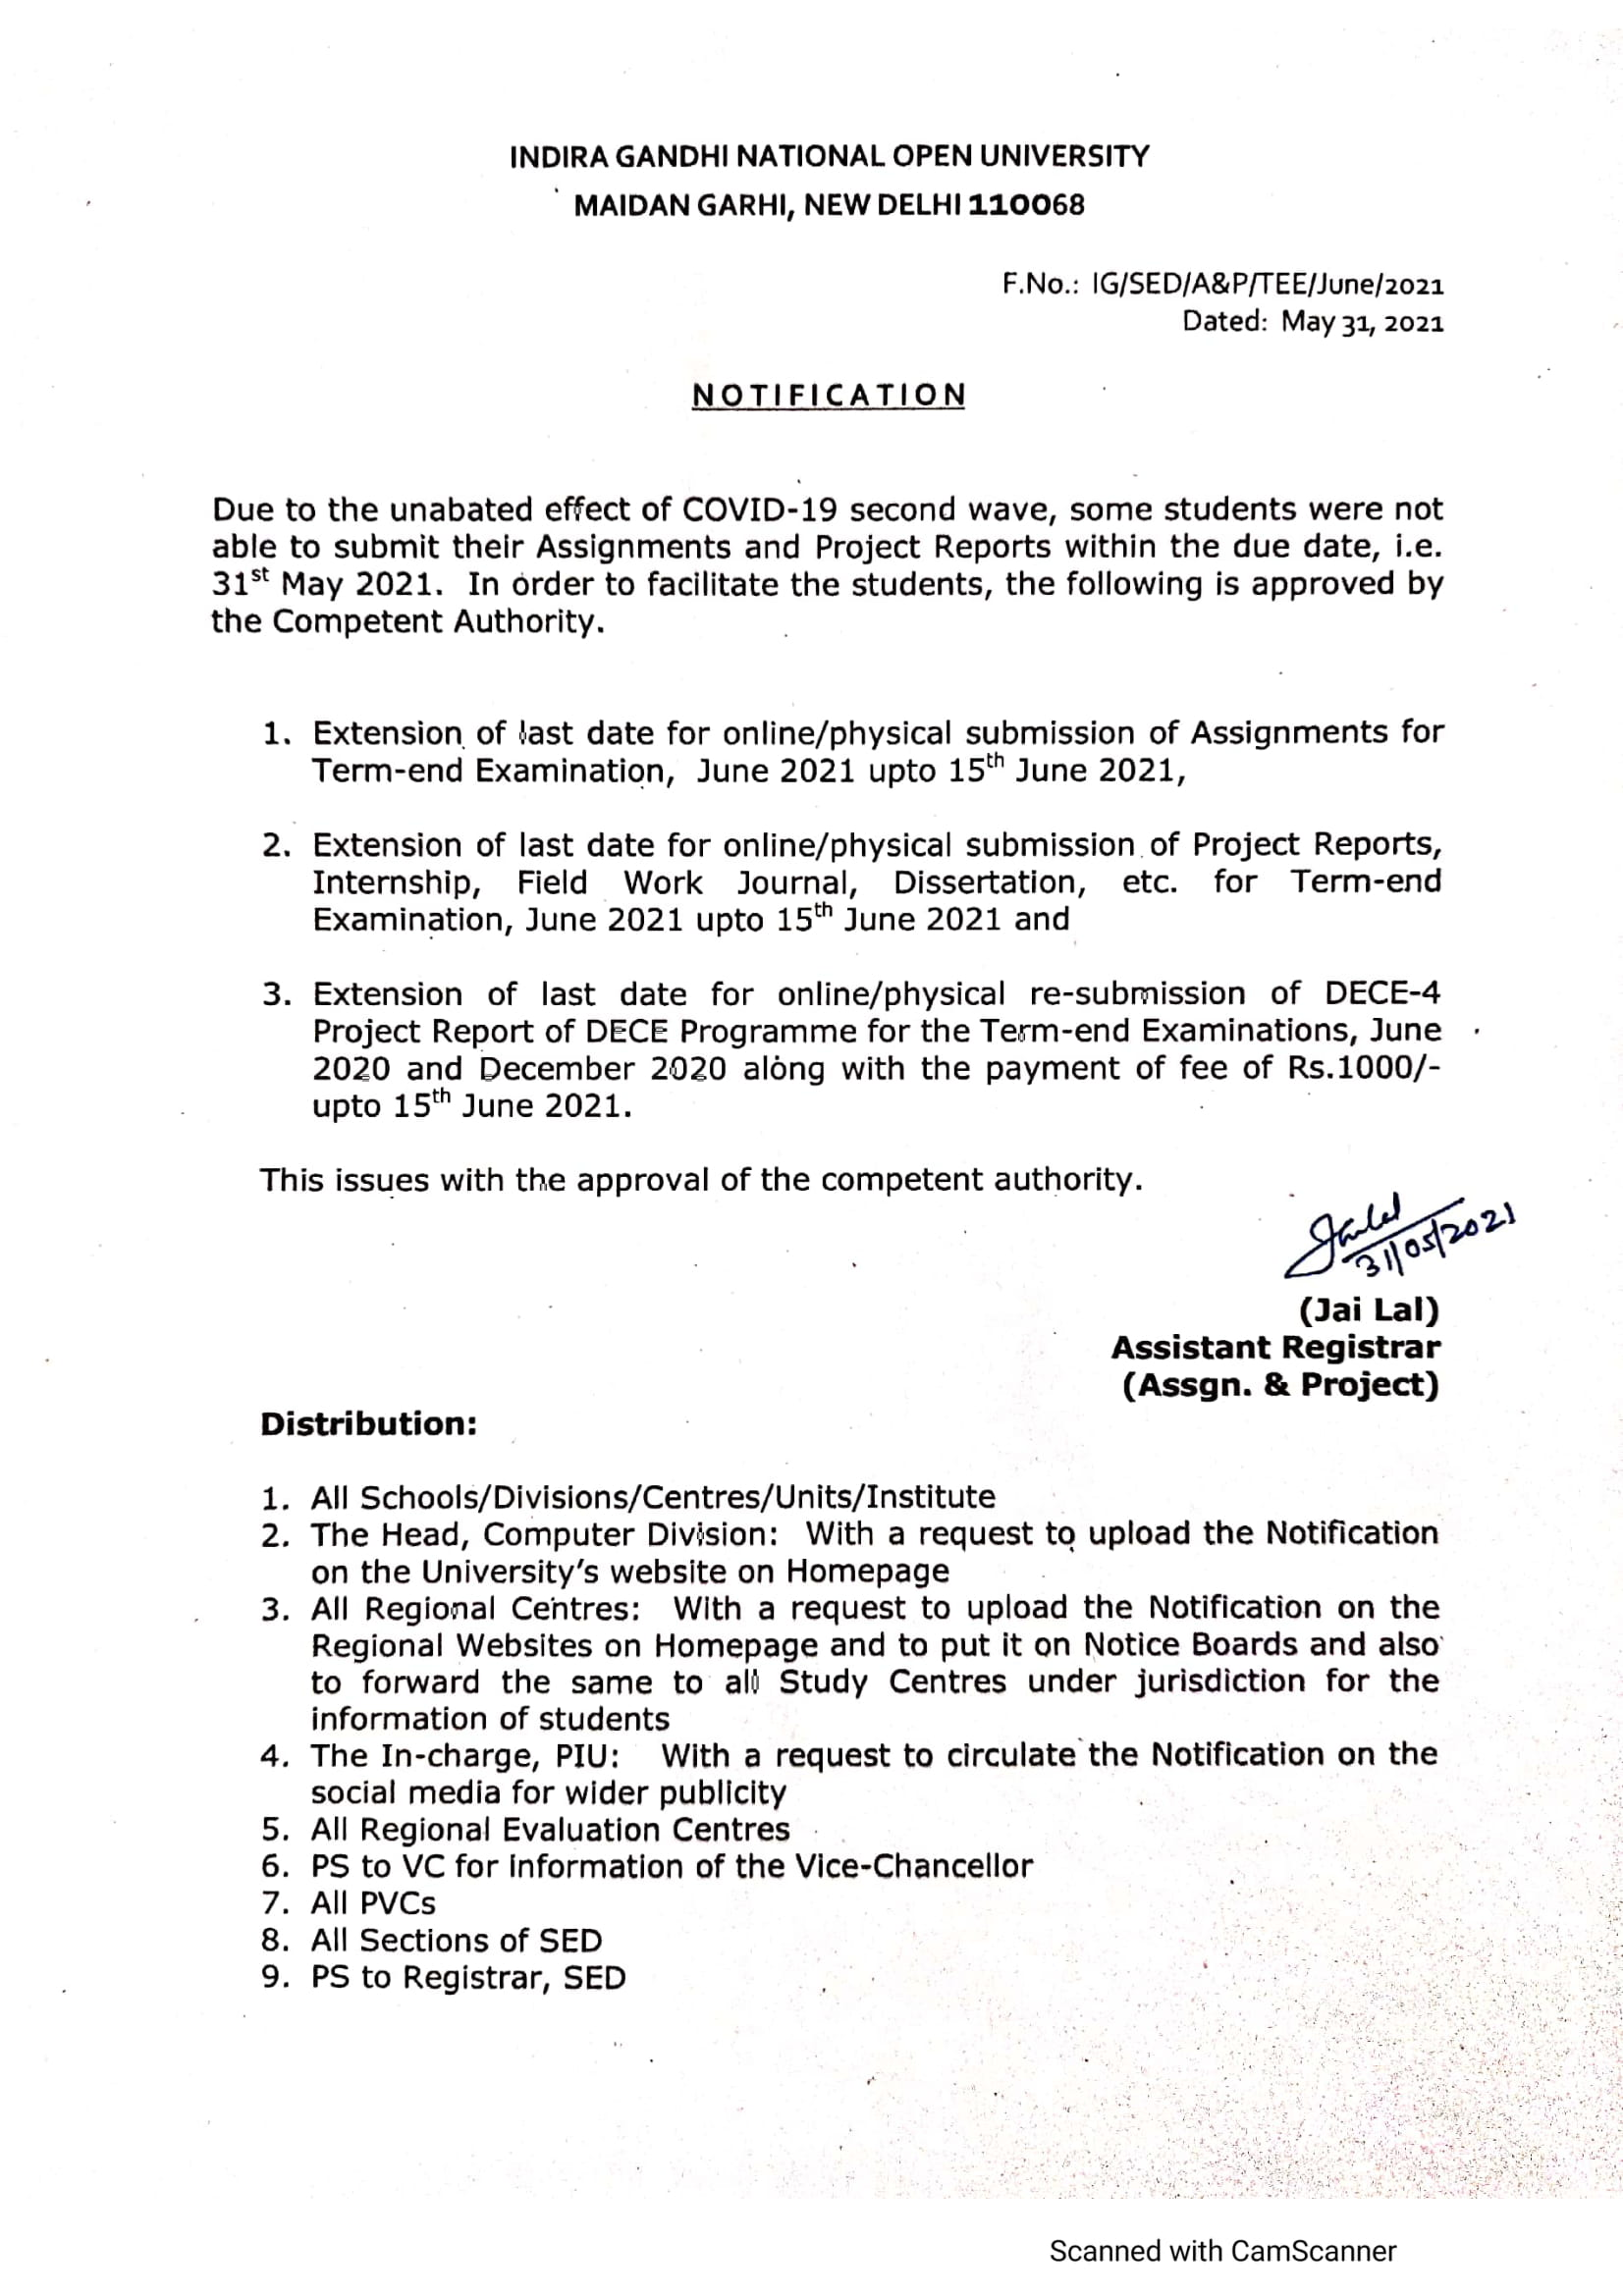 ignou notice 31 may 2021